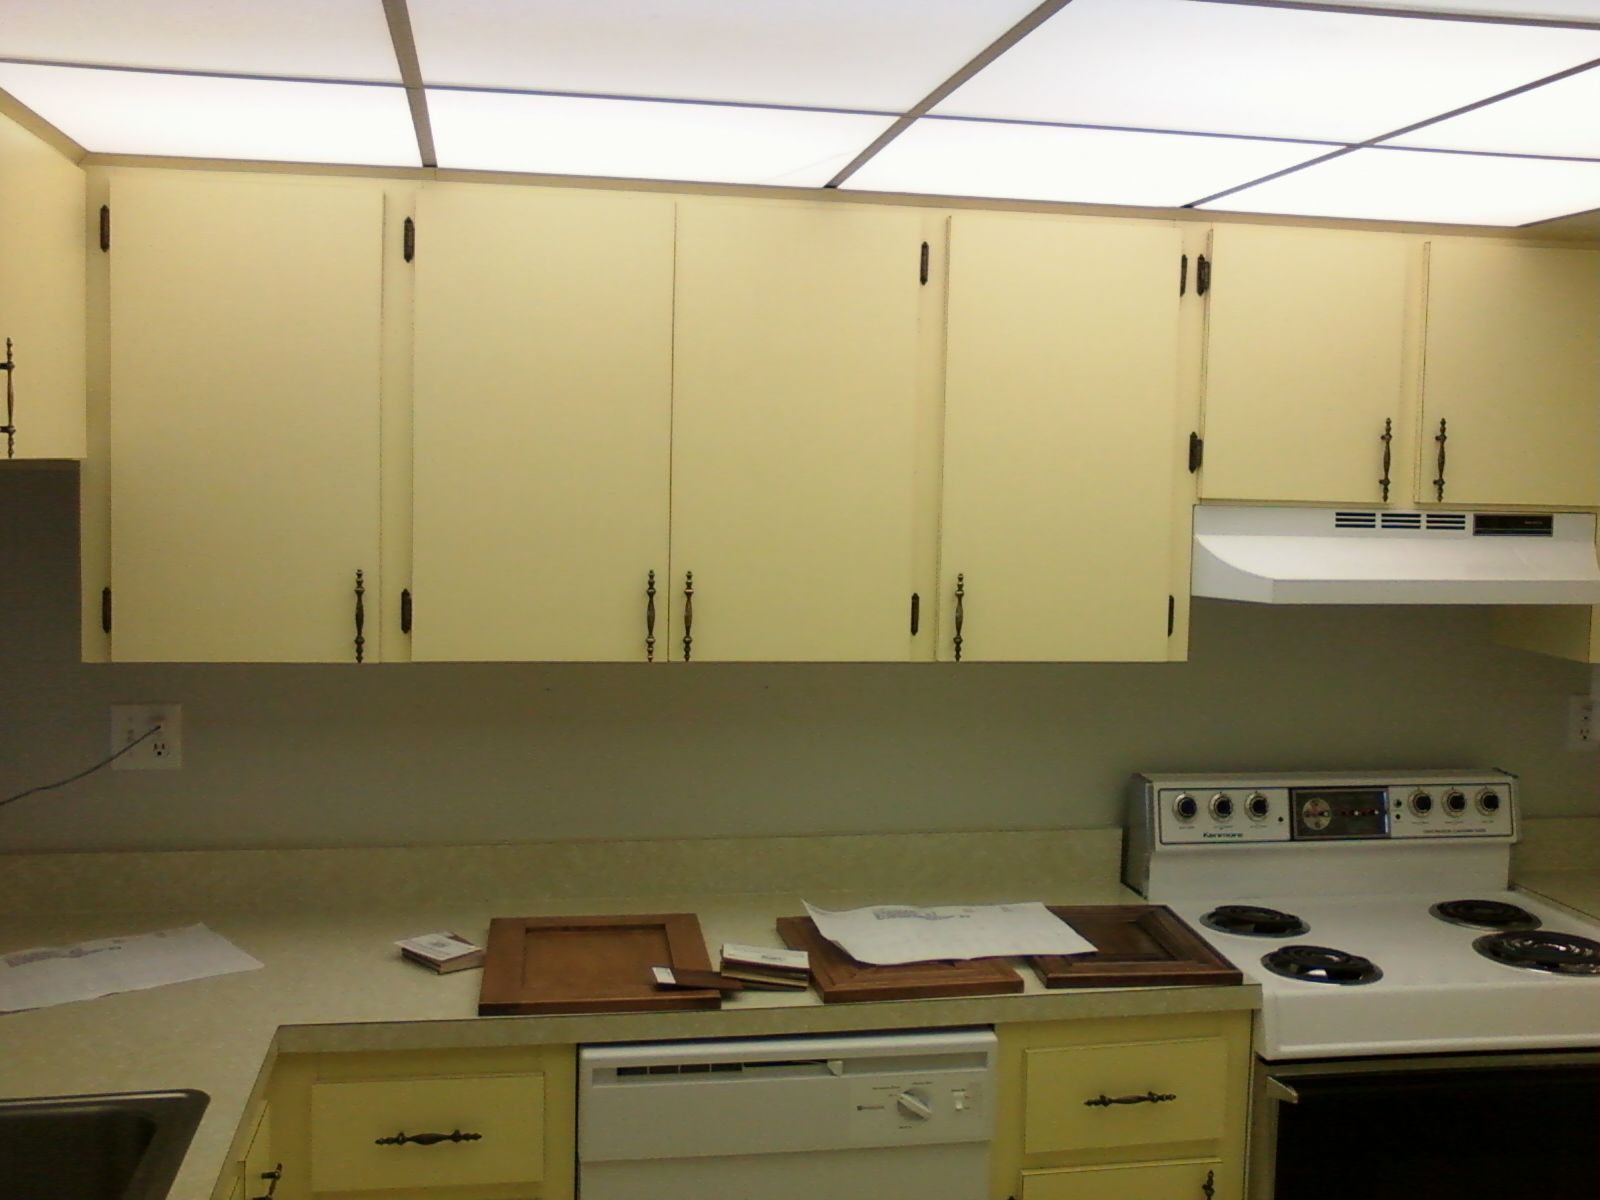 cabinet refacing photo gallery refacing kitchen cabinets Before Cabinet Refacing